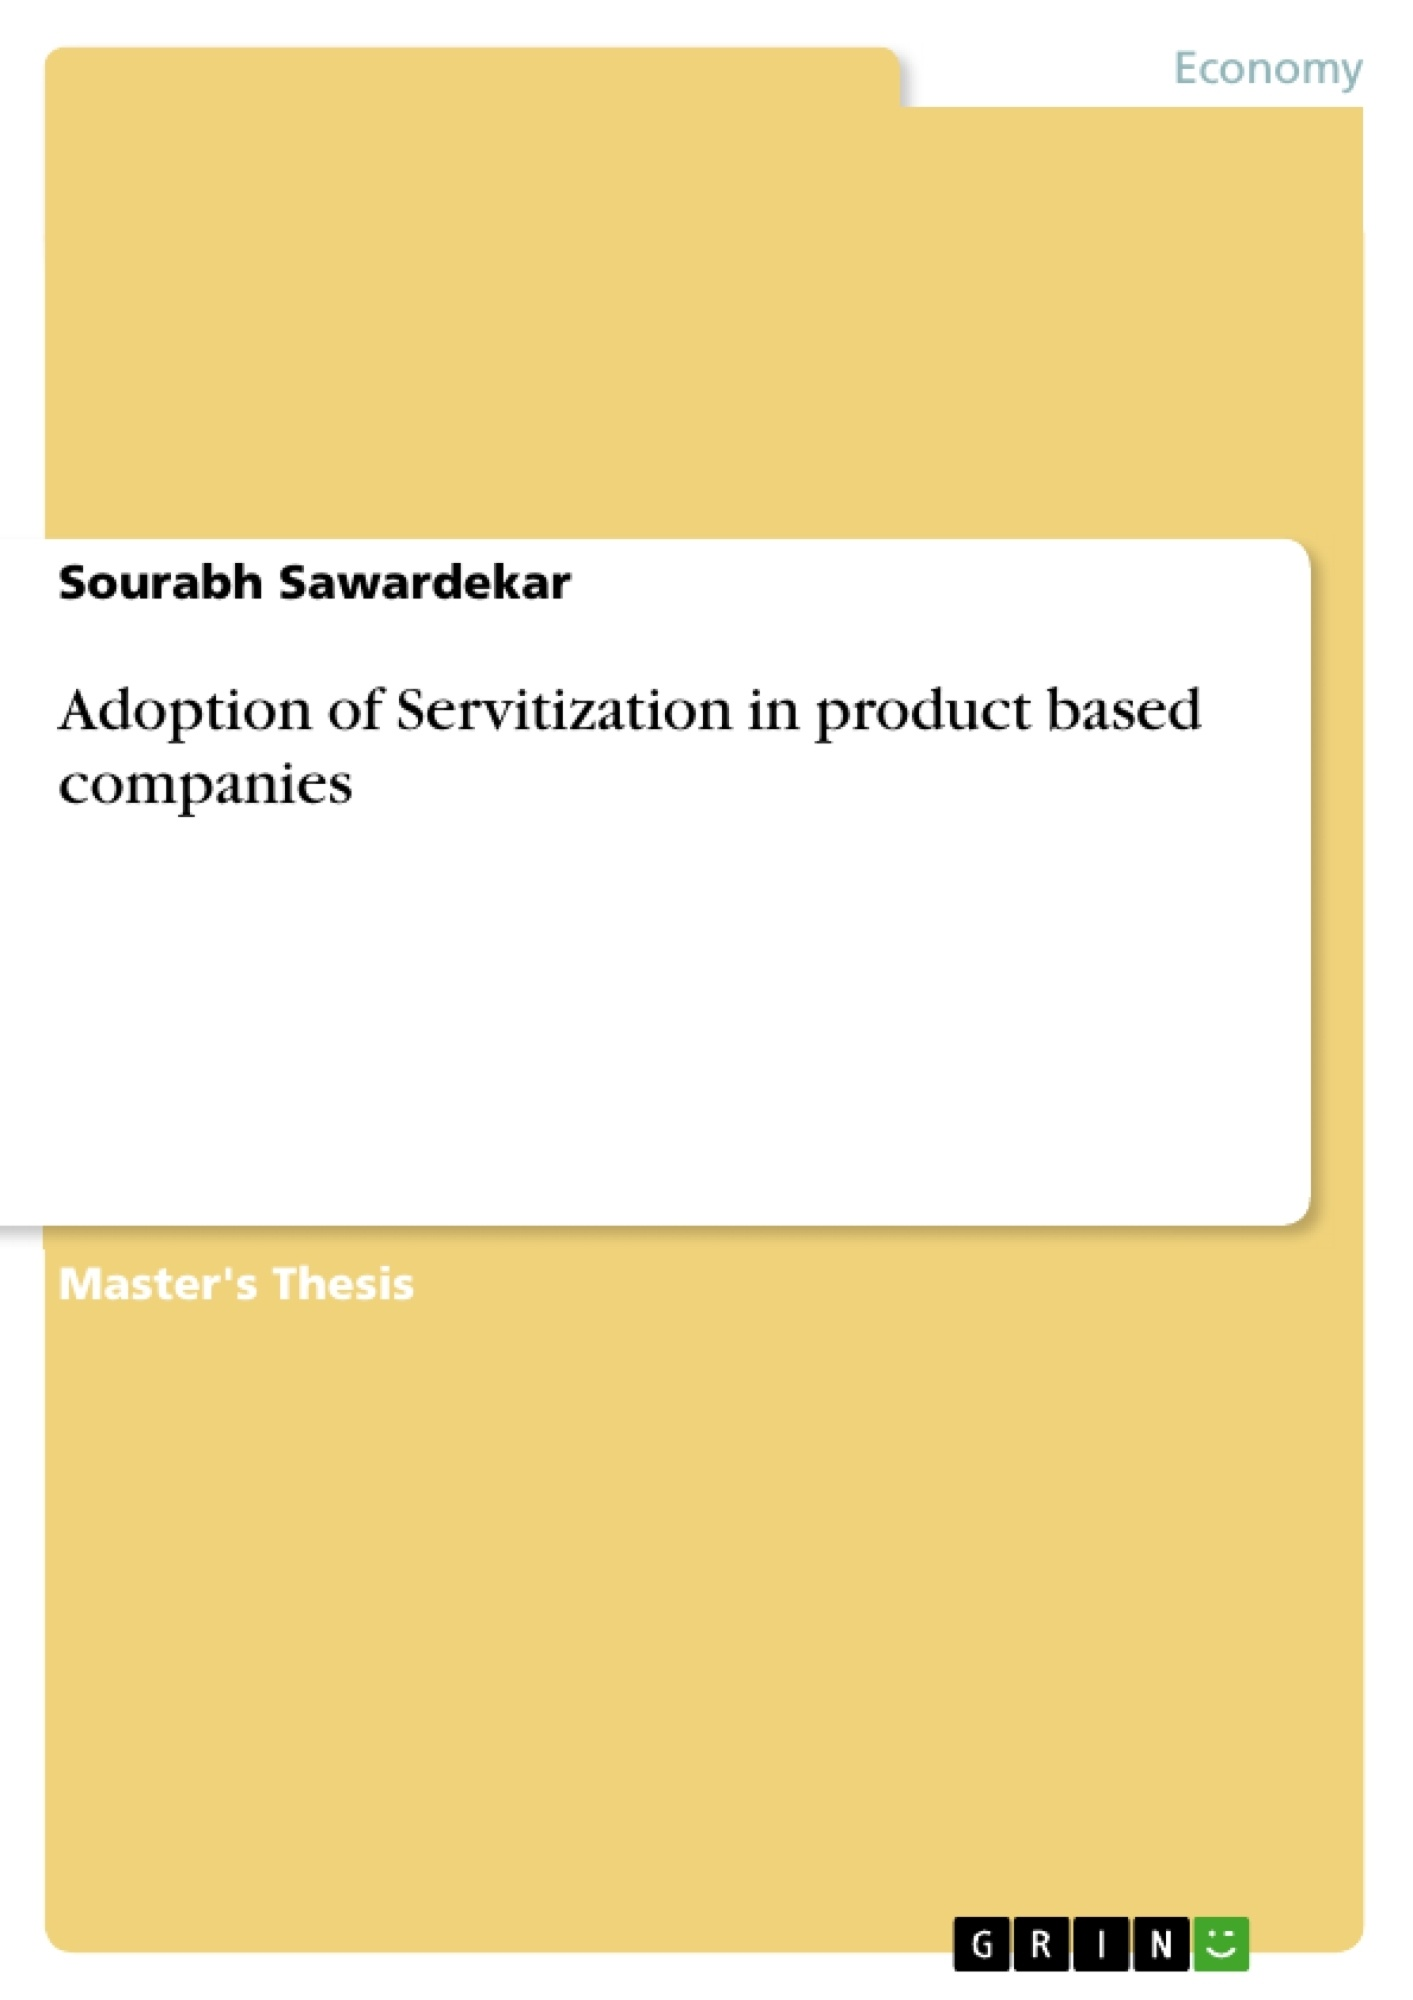 Title: Adoption of Servitization in product based companies